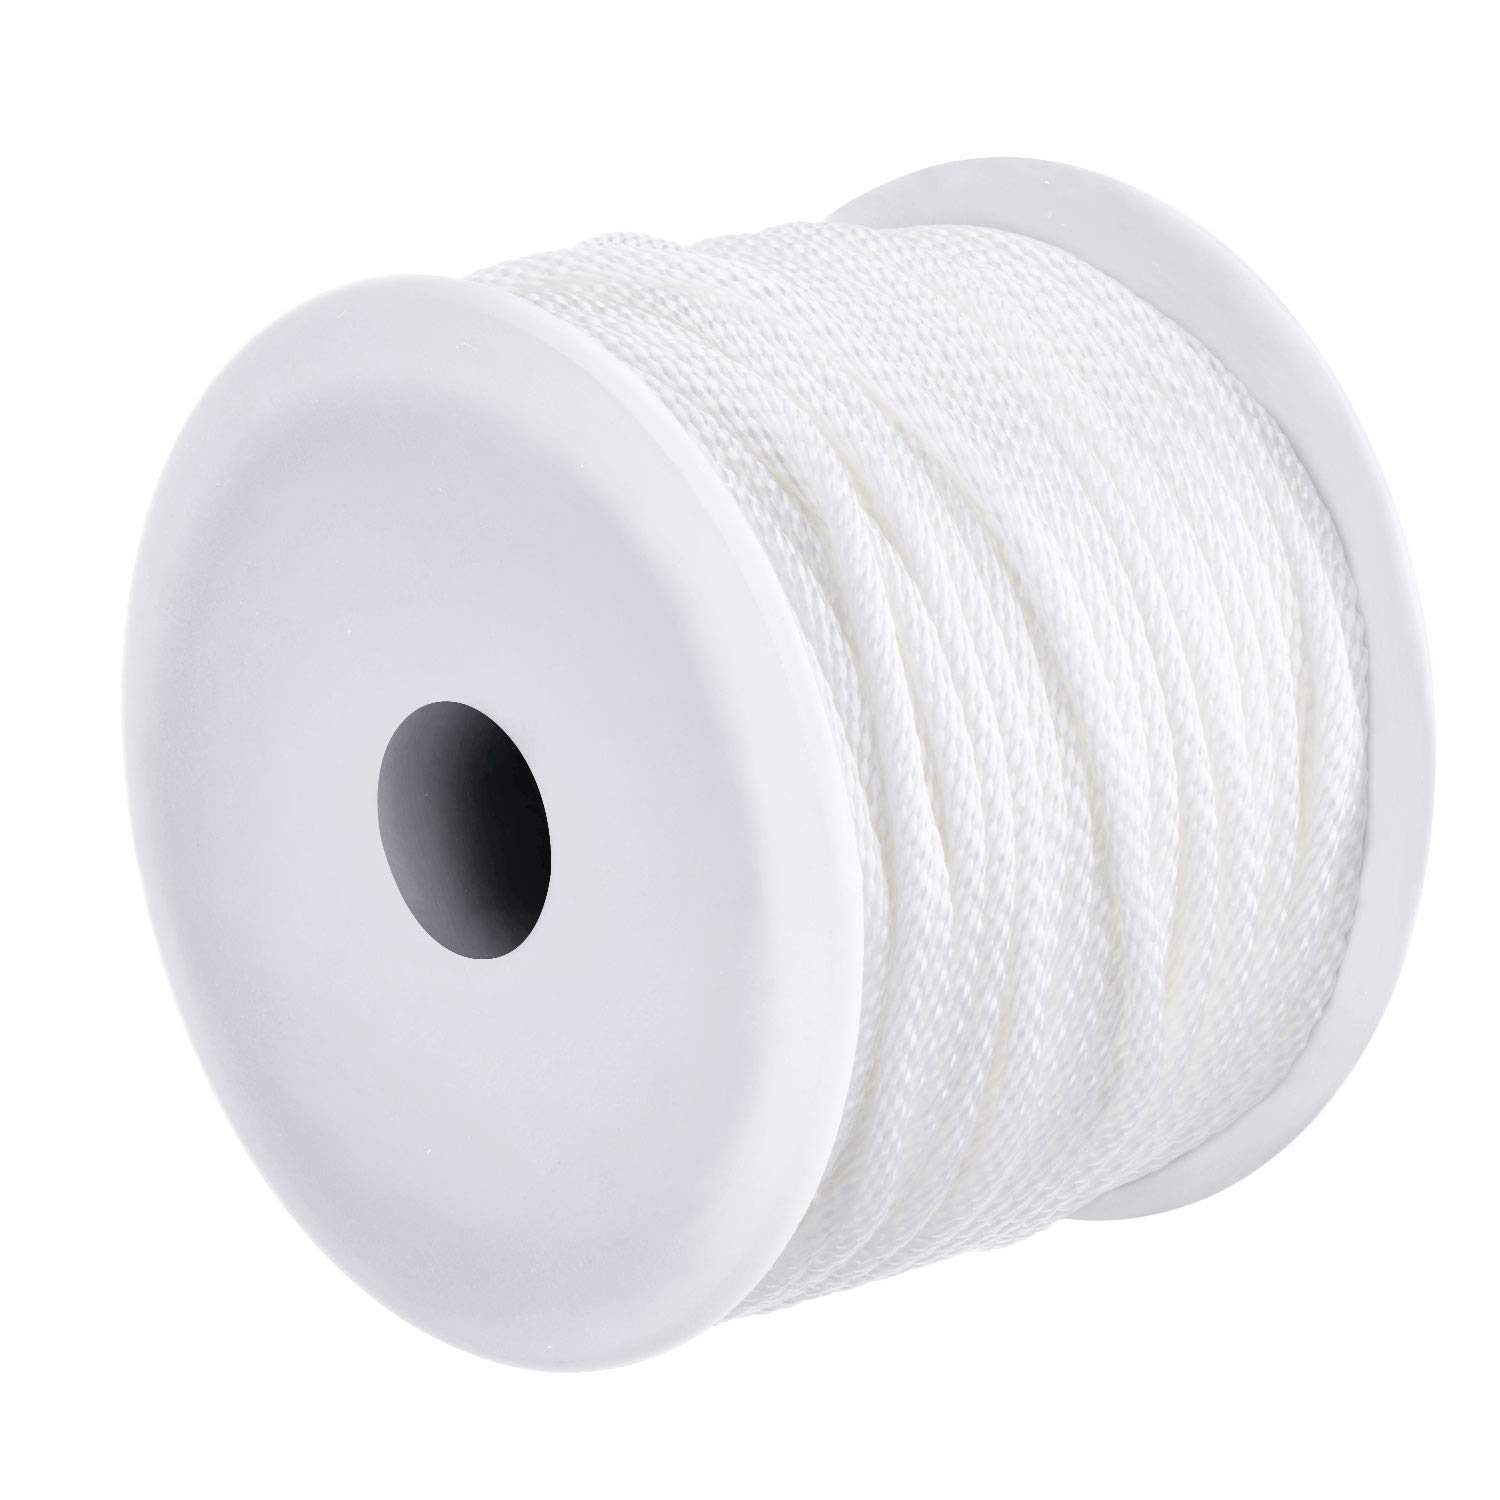 Canomo 1/8 inch Diameter Nylon Twist Cord String Rope Picture Hanging Cord Wire Hold Up to 30kg for Home Décor, Picture Mirror Hanging, 164 Feet